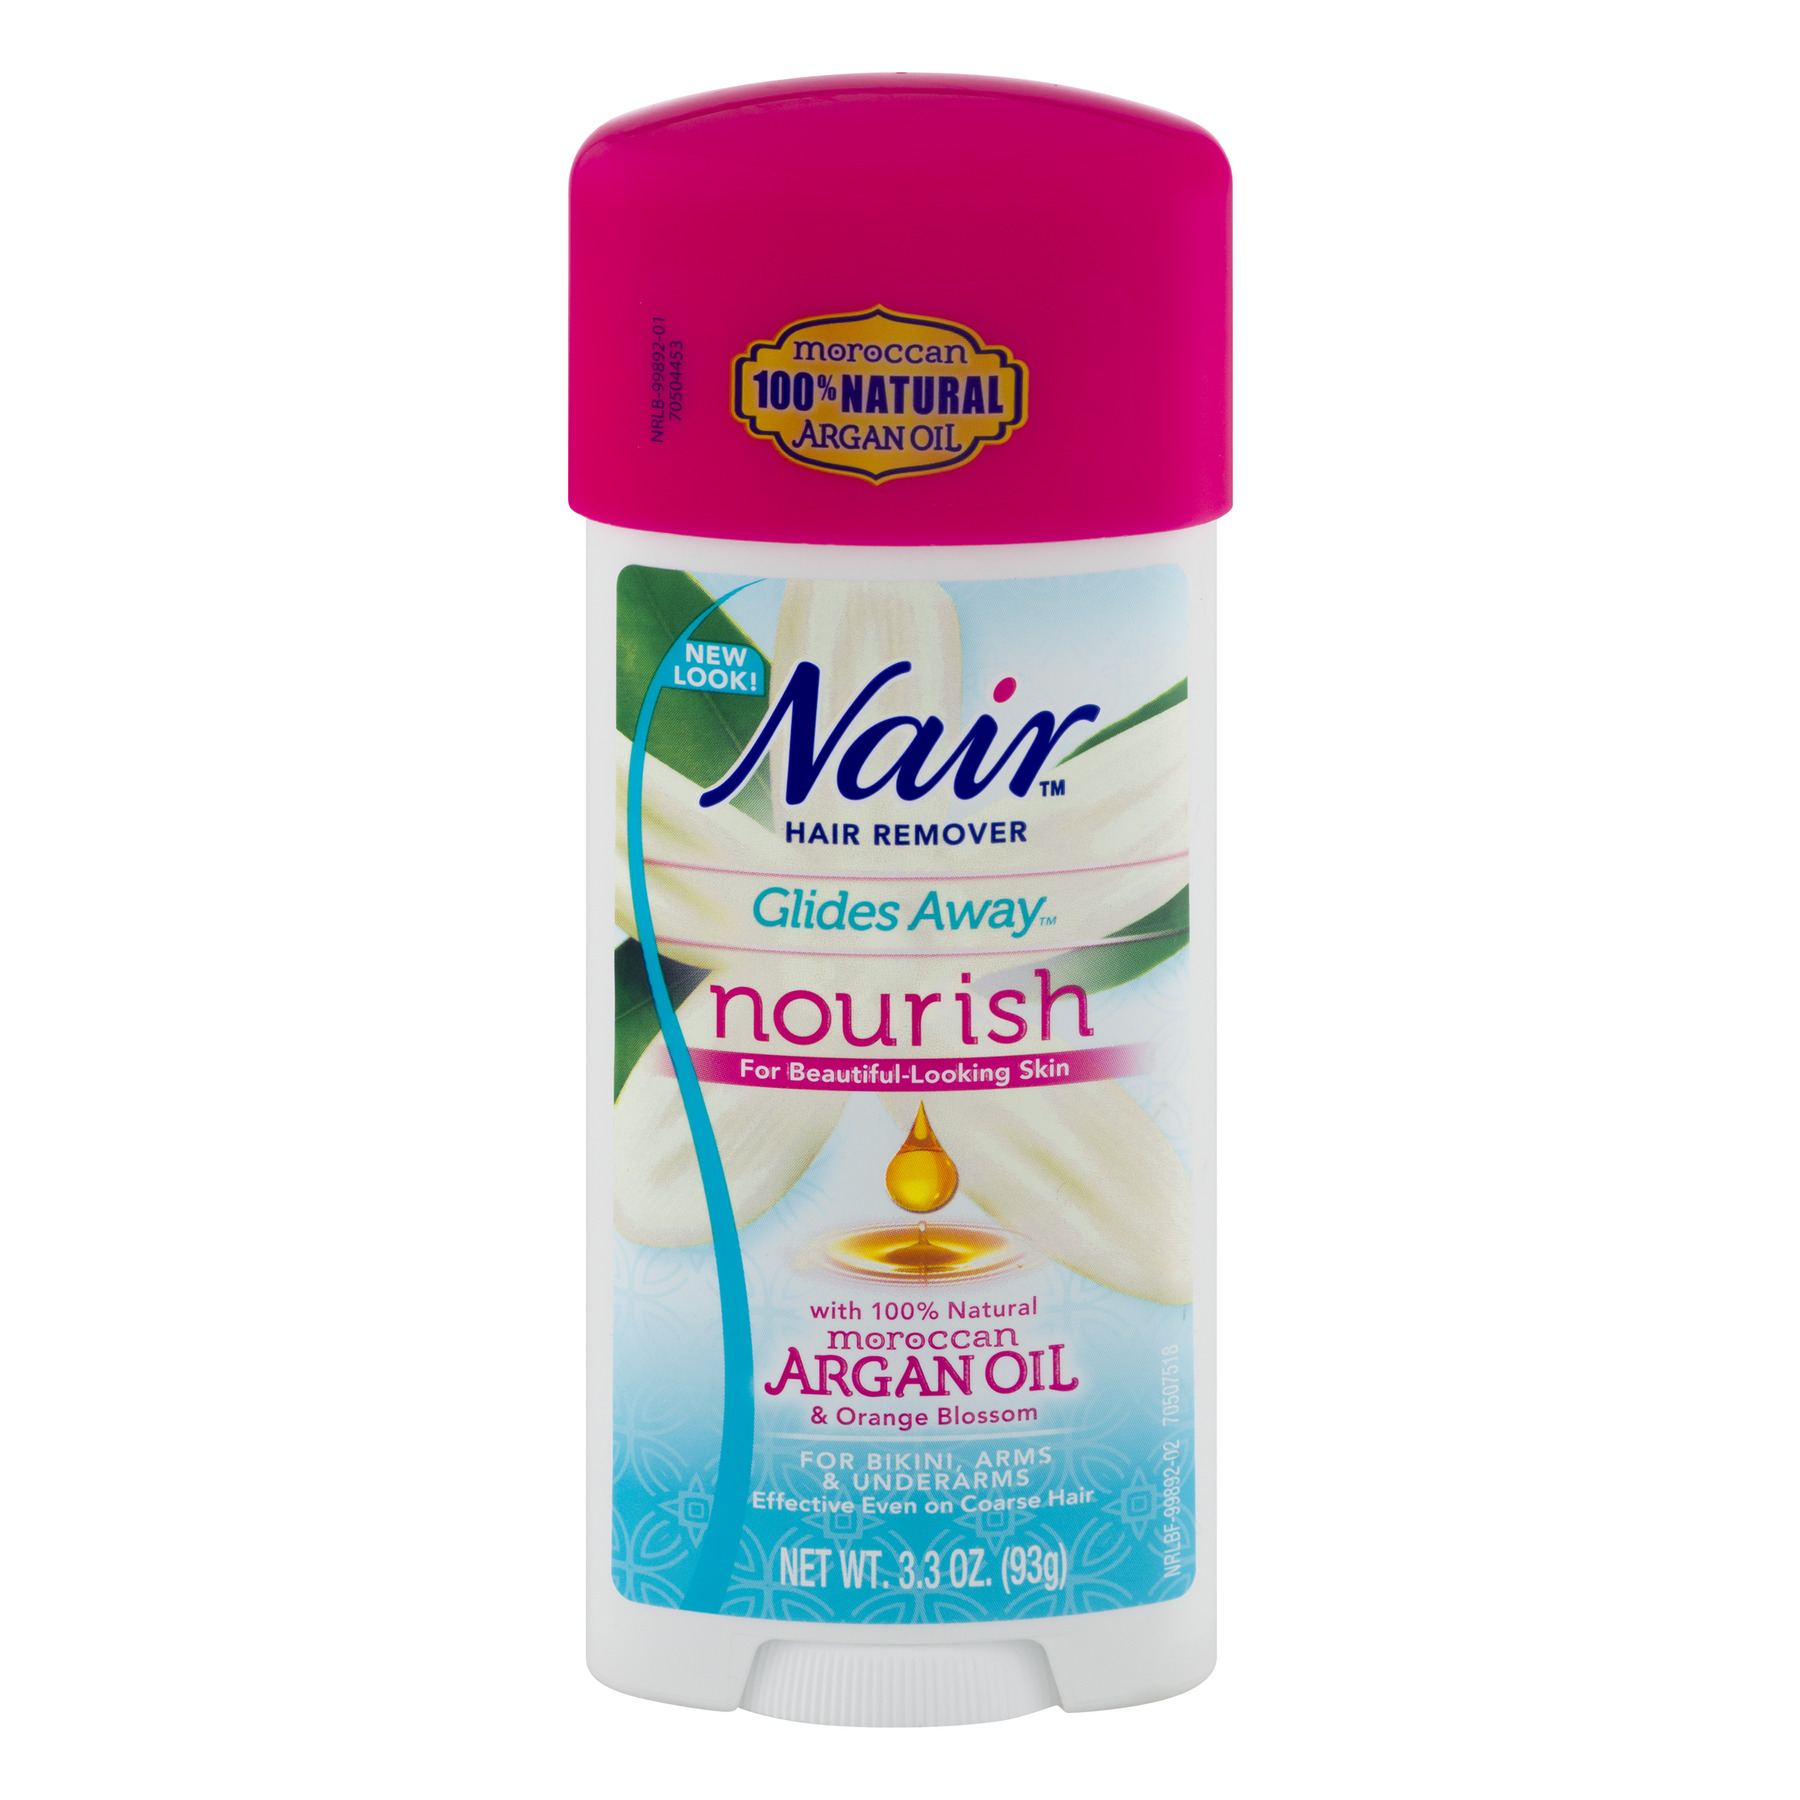 Nair Hair Remover Glides Away for Bikini, Arms & Underarms with Argan Oil, 3.3 OZ